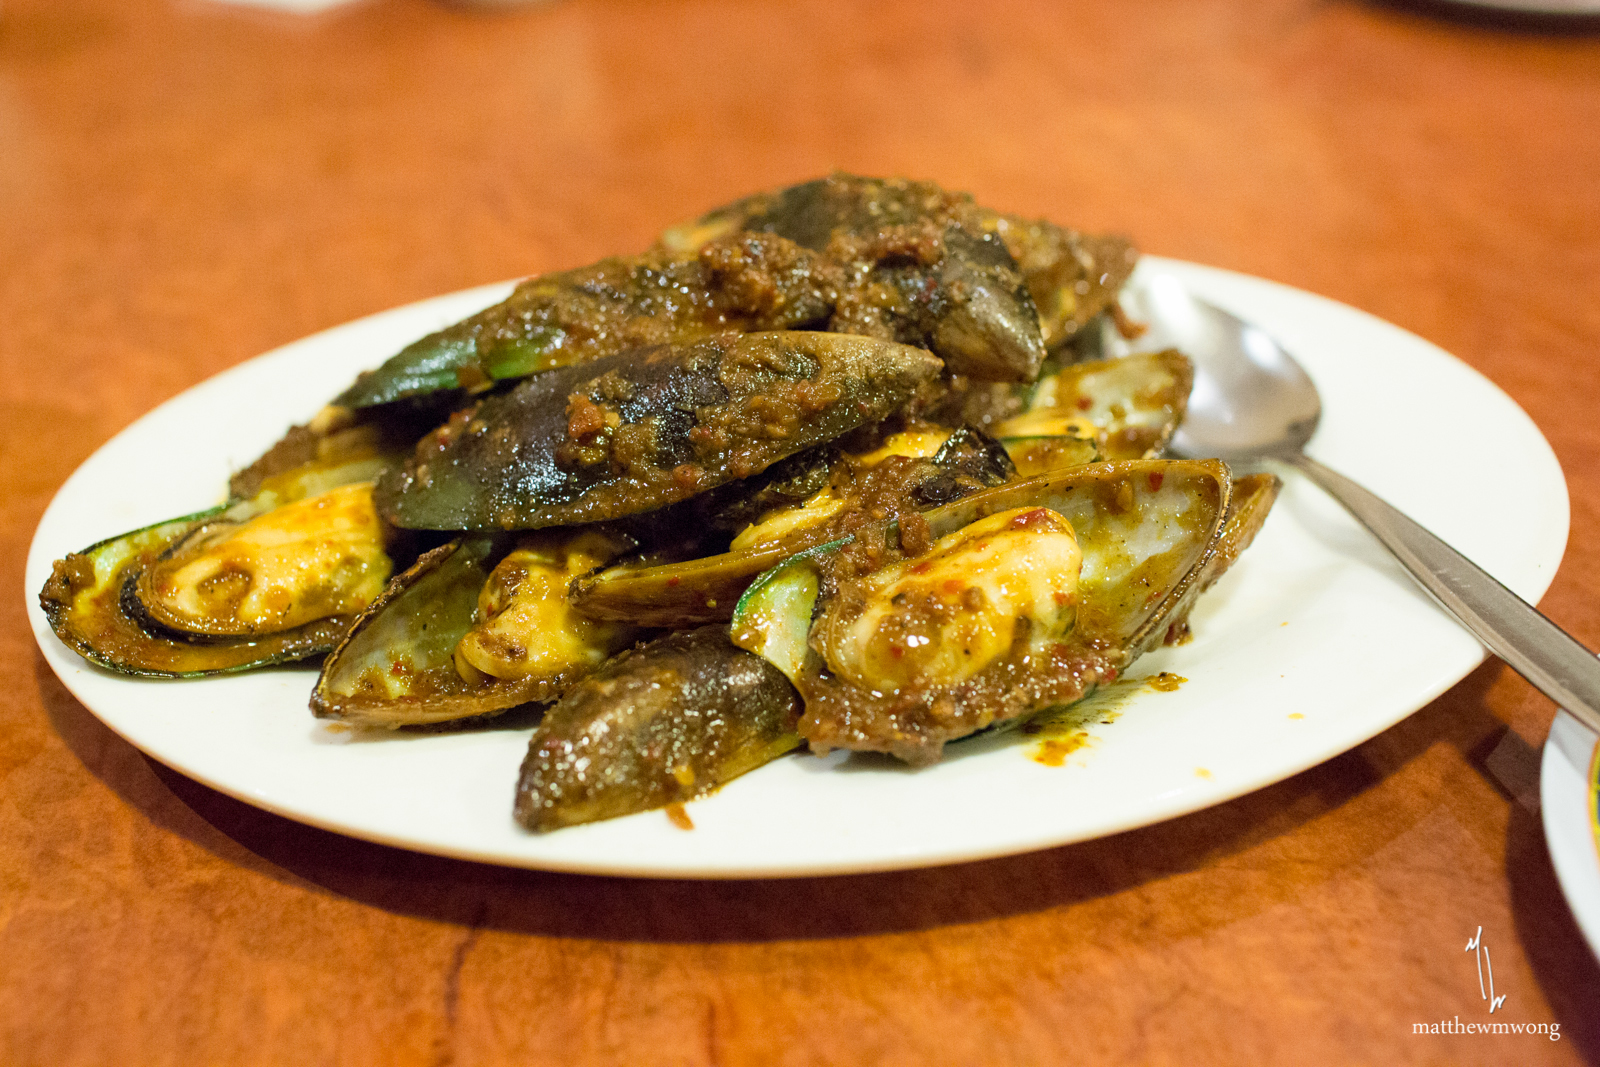 Spicy Mussels, mussels cooked in sambal sauce